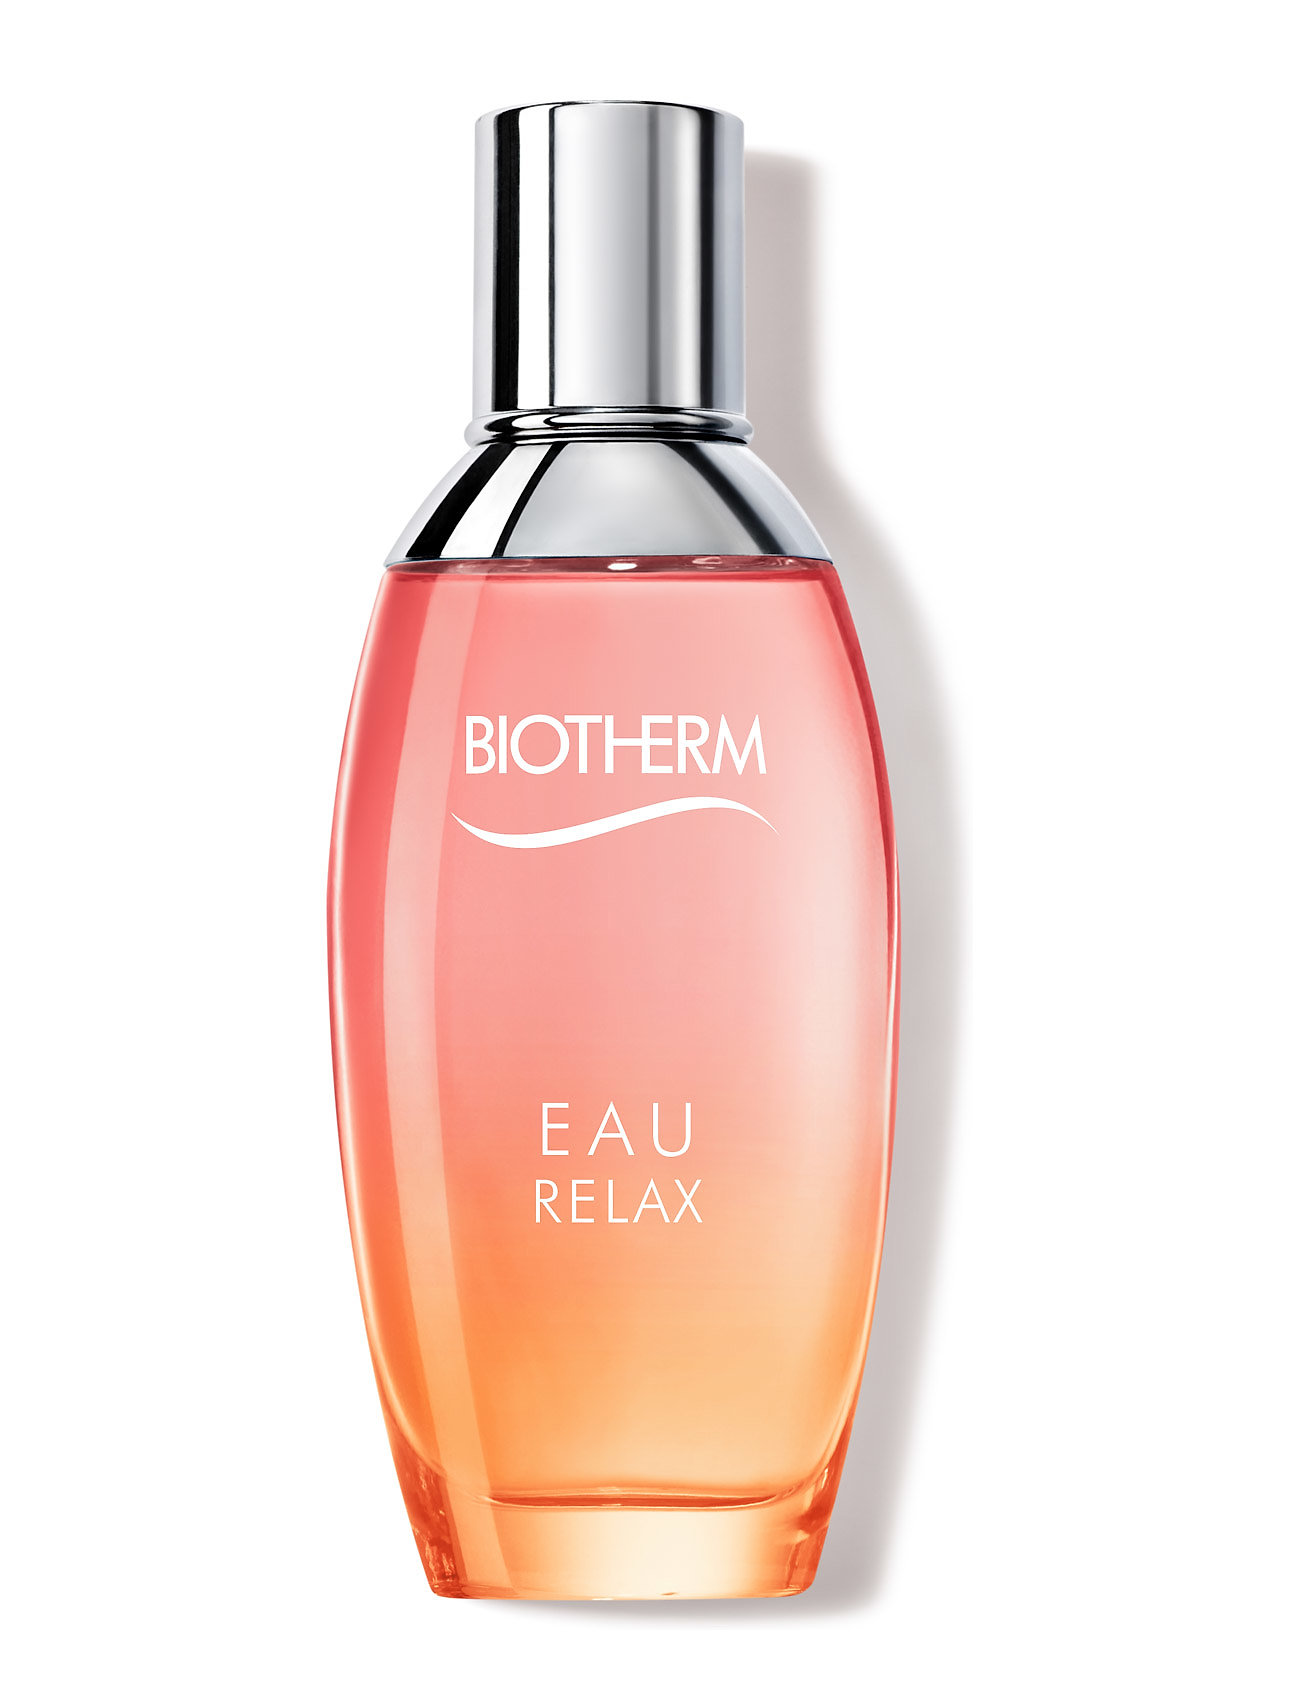 biotherm – Eau relax edt 50 ml fra boozt.com dk